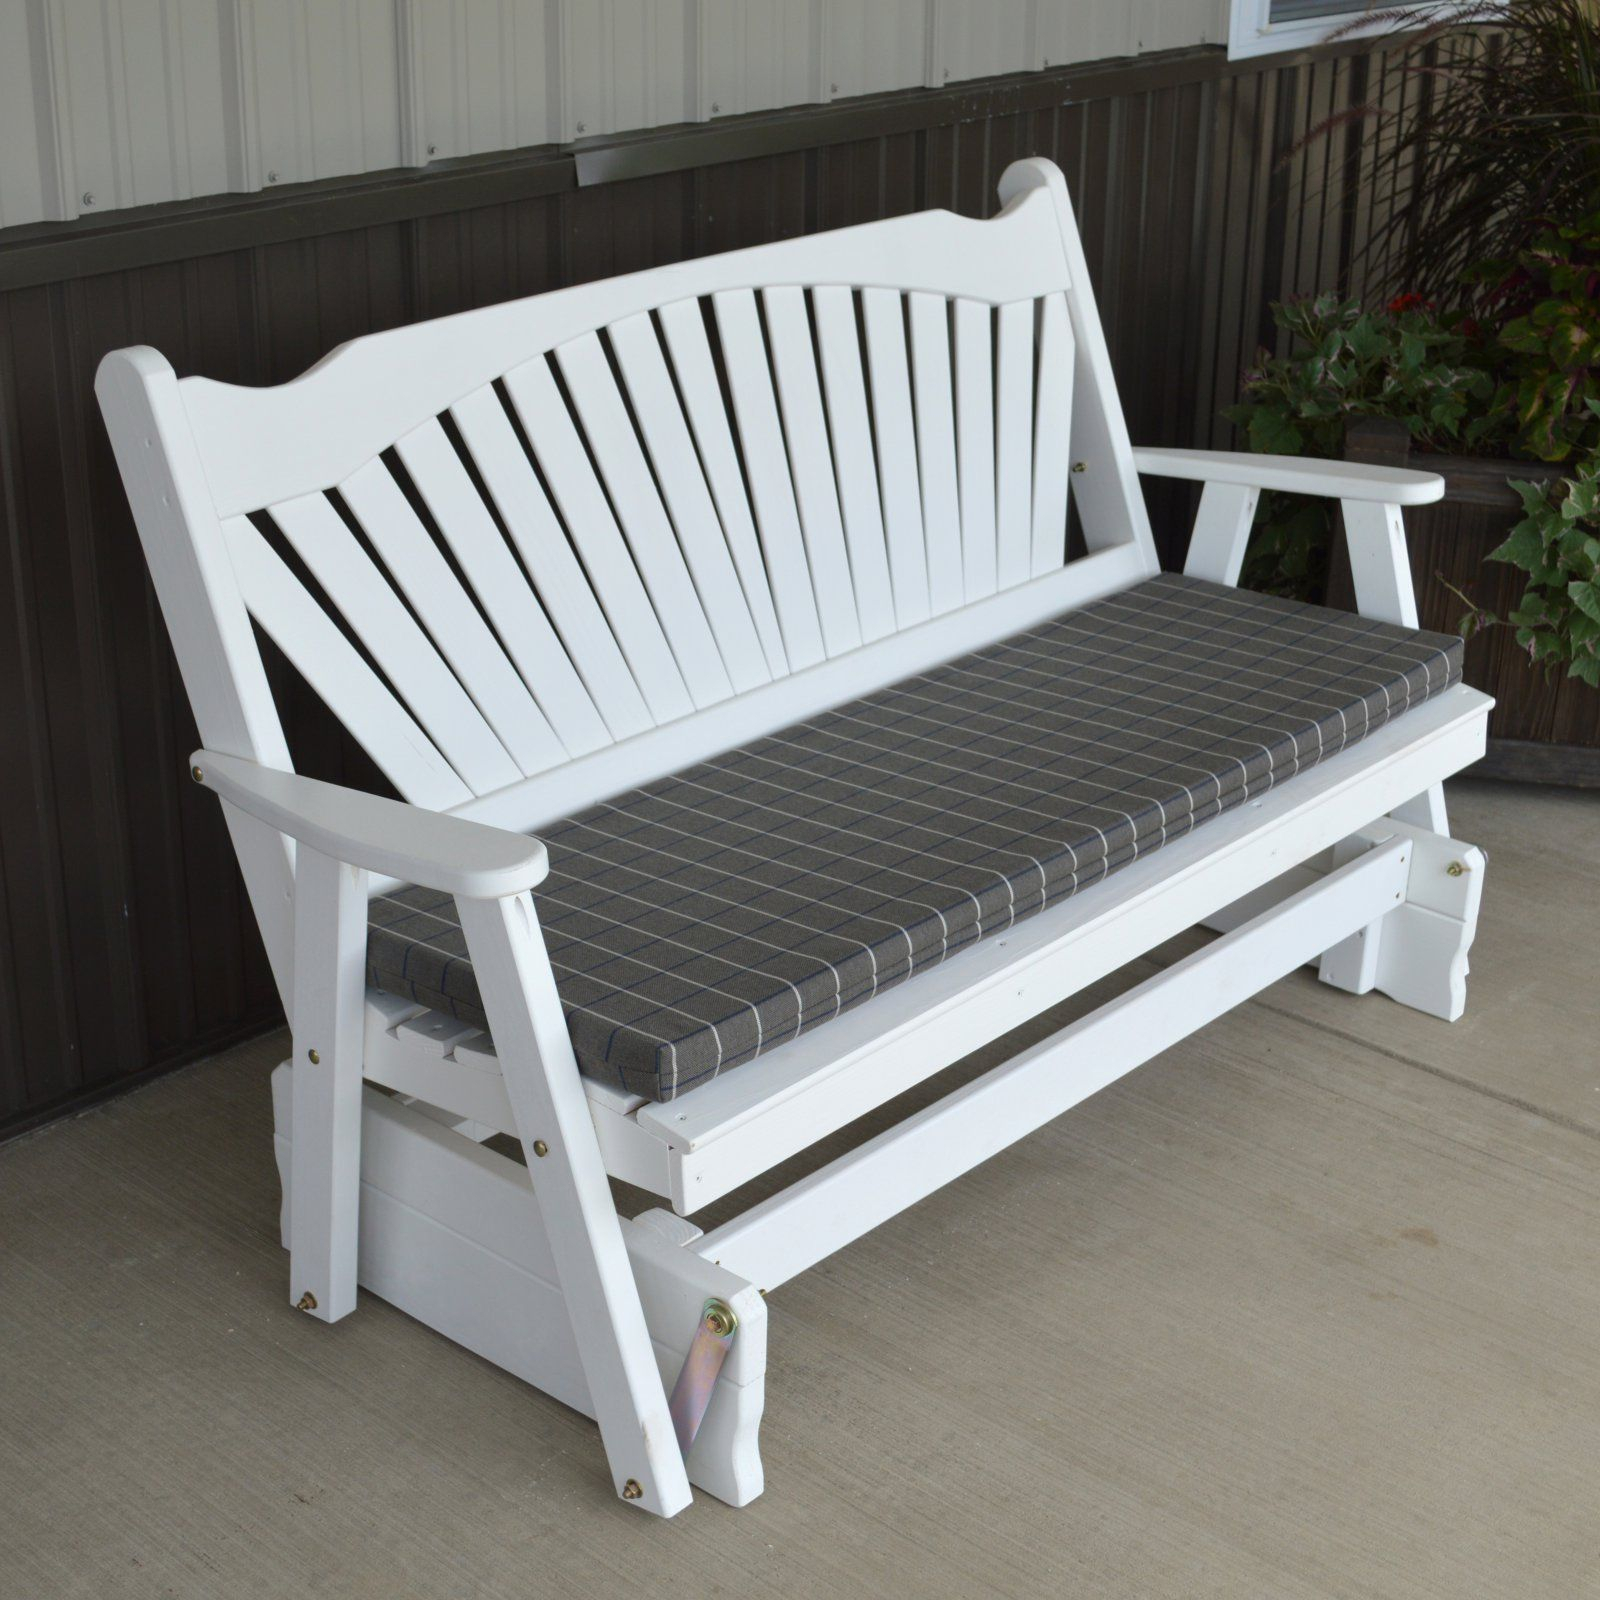 A & L Furniture Yellow Pine Fanback Outdoor Bench Glider Oak Regarding Fanback Glider Benches (View 5 of 25)